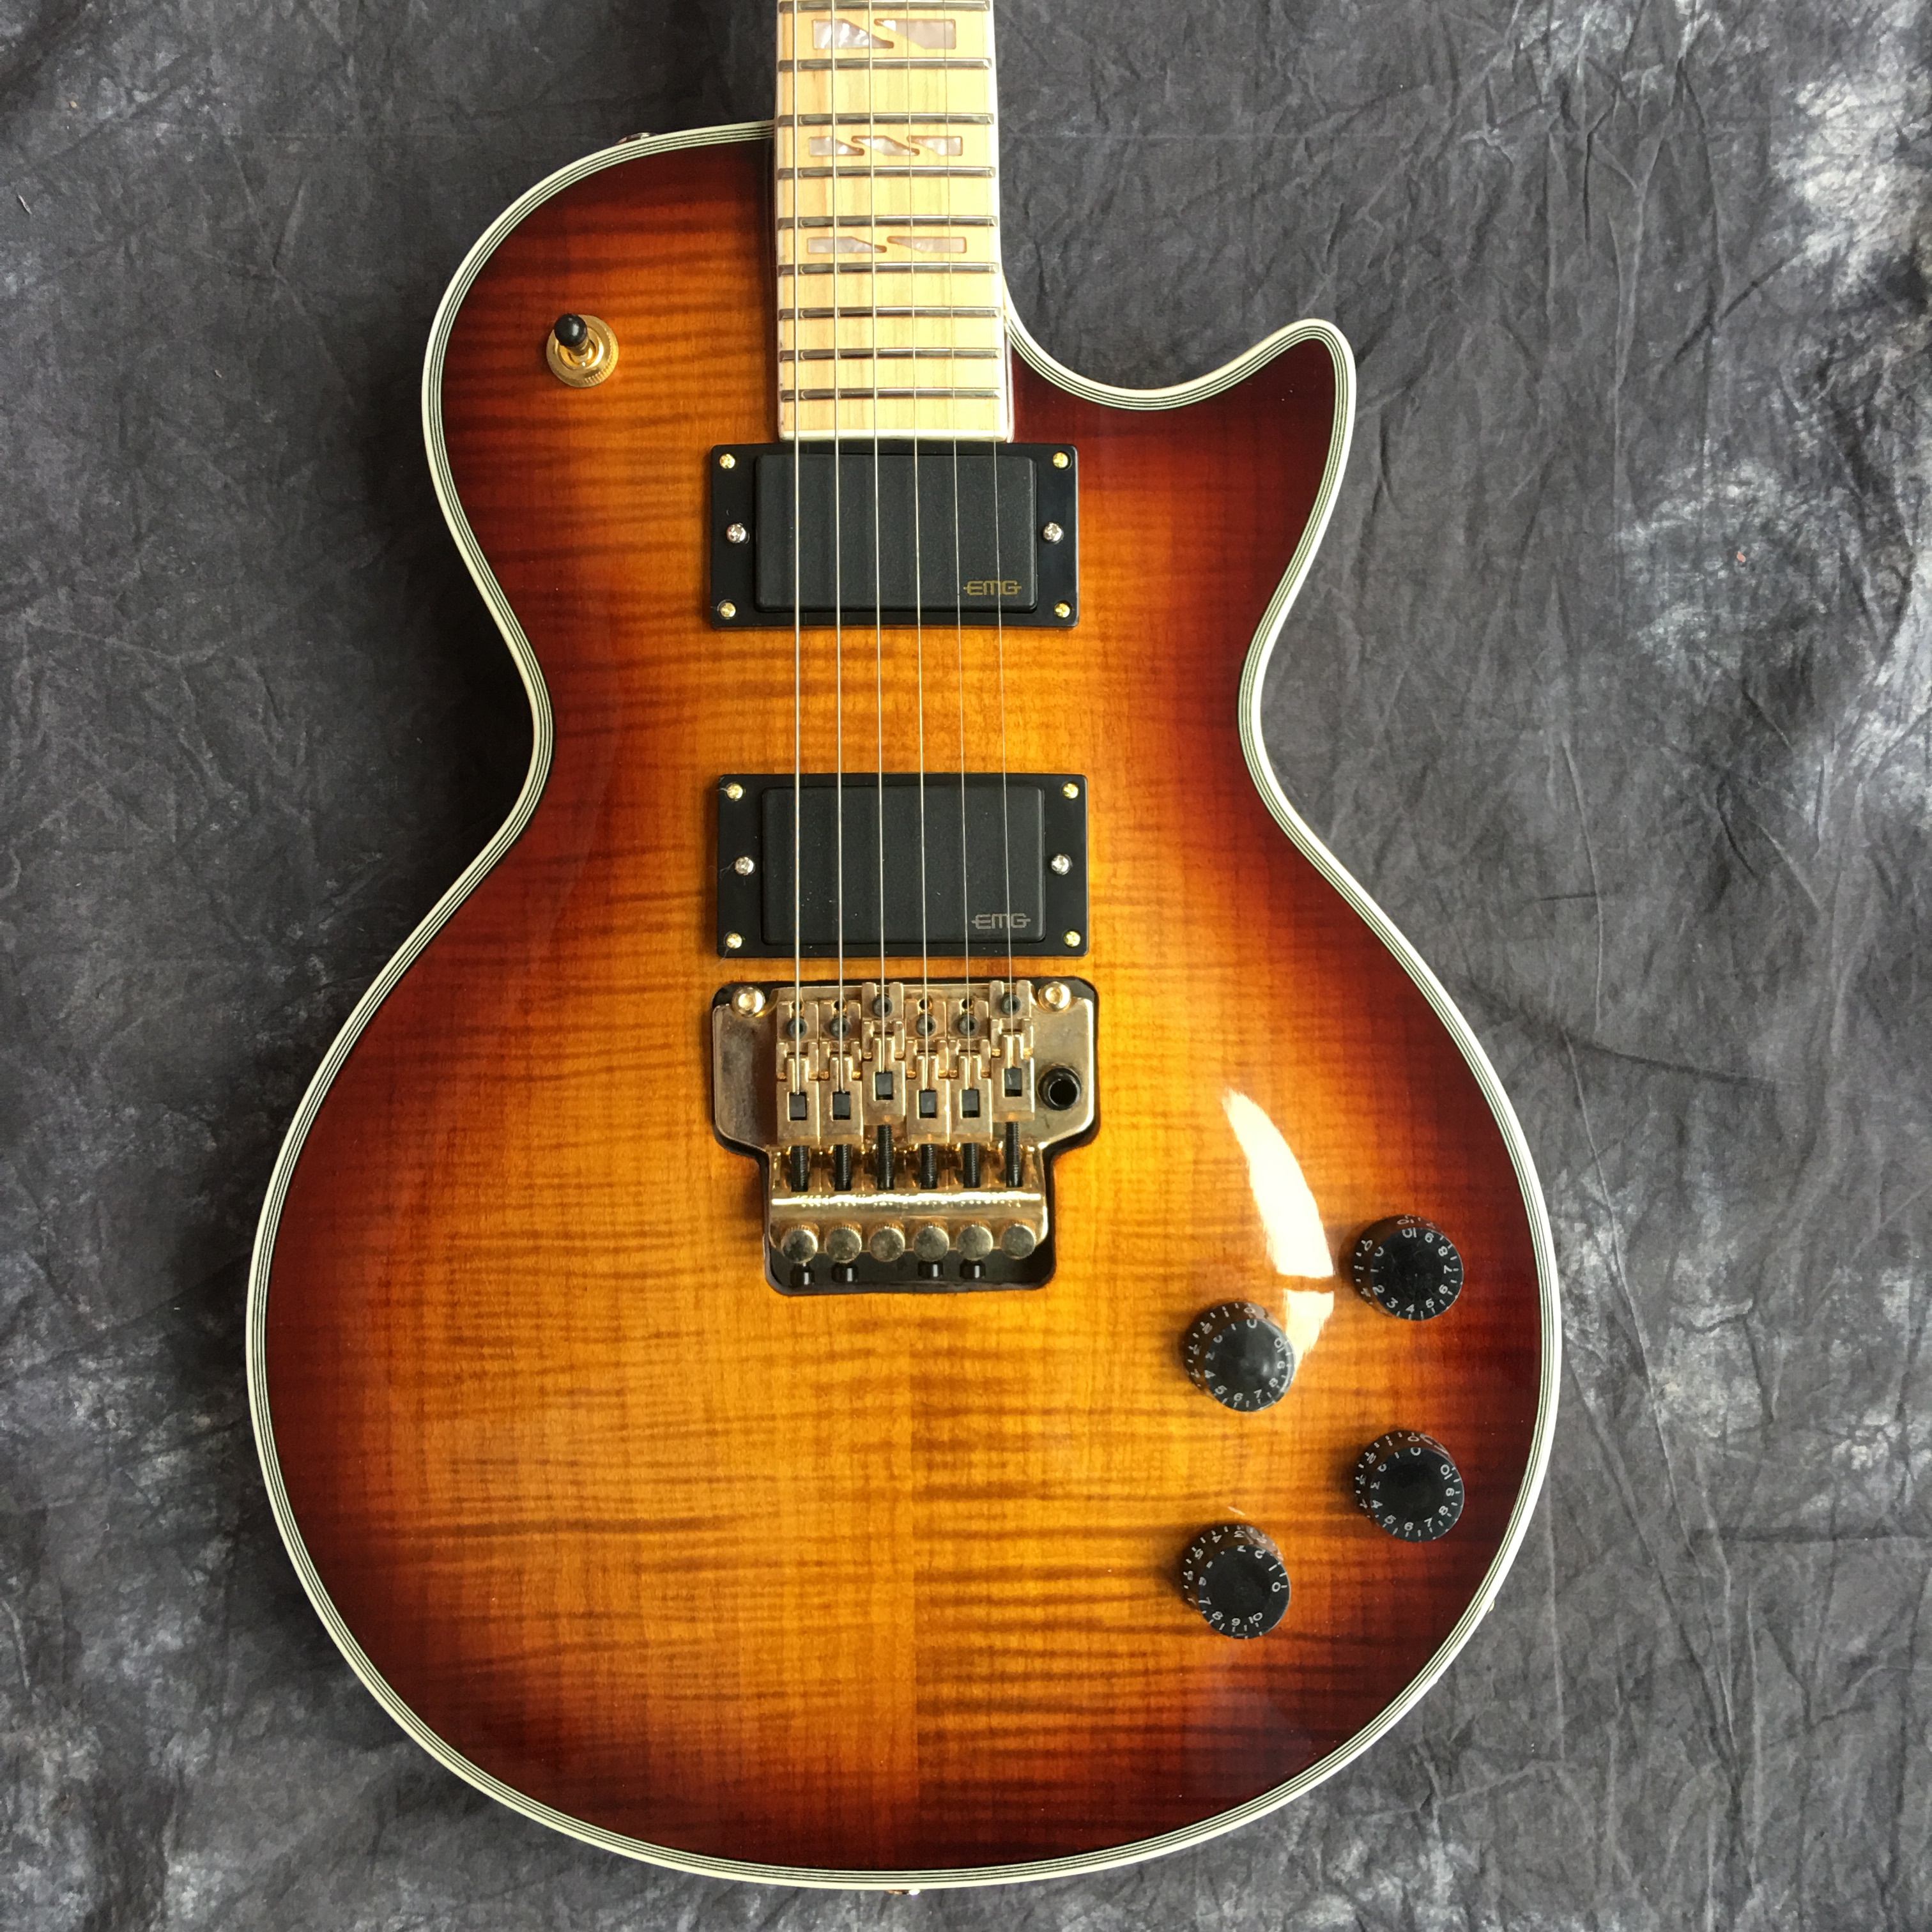 2019 Electric guitar, LP, new style, high quality guitar, vibrato system, free shipping(China)